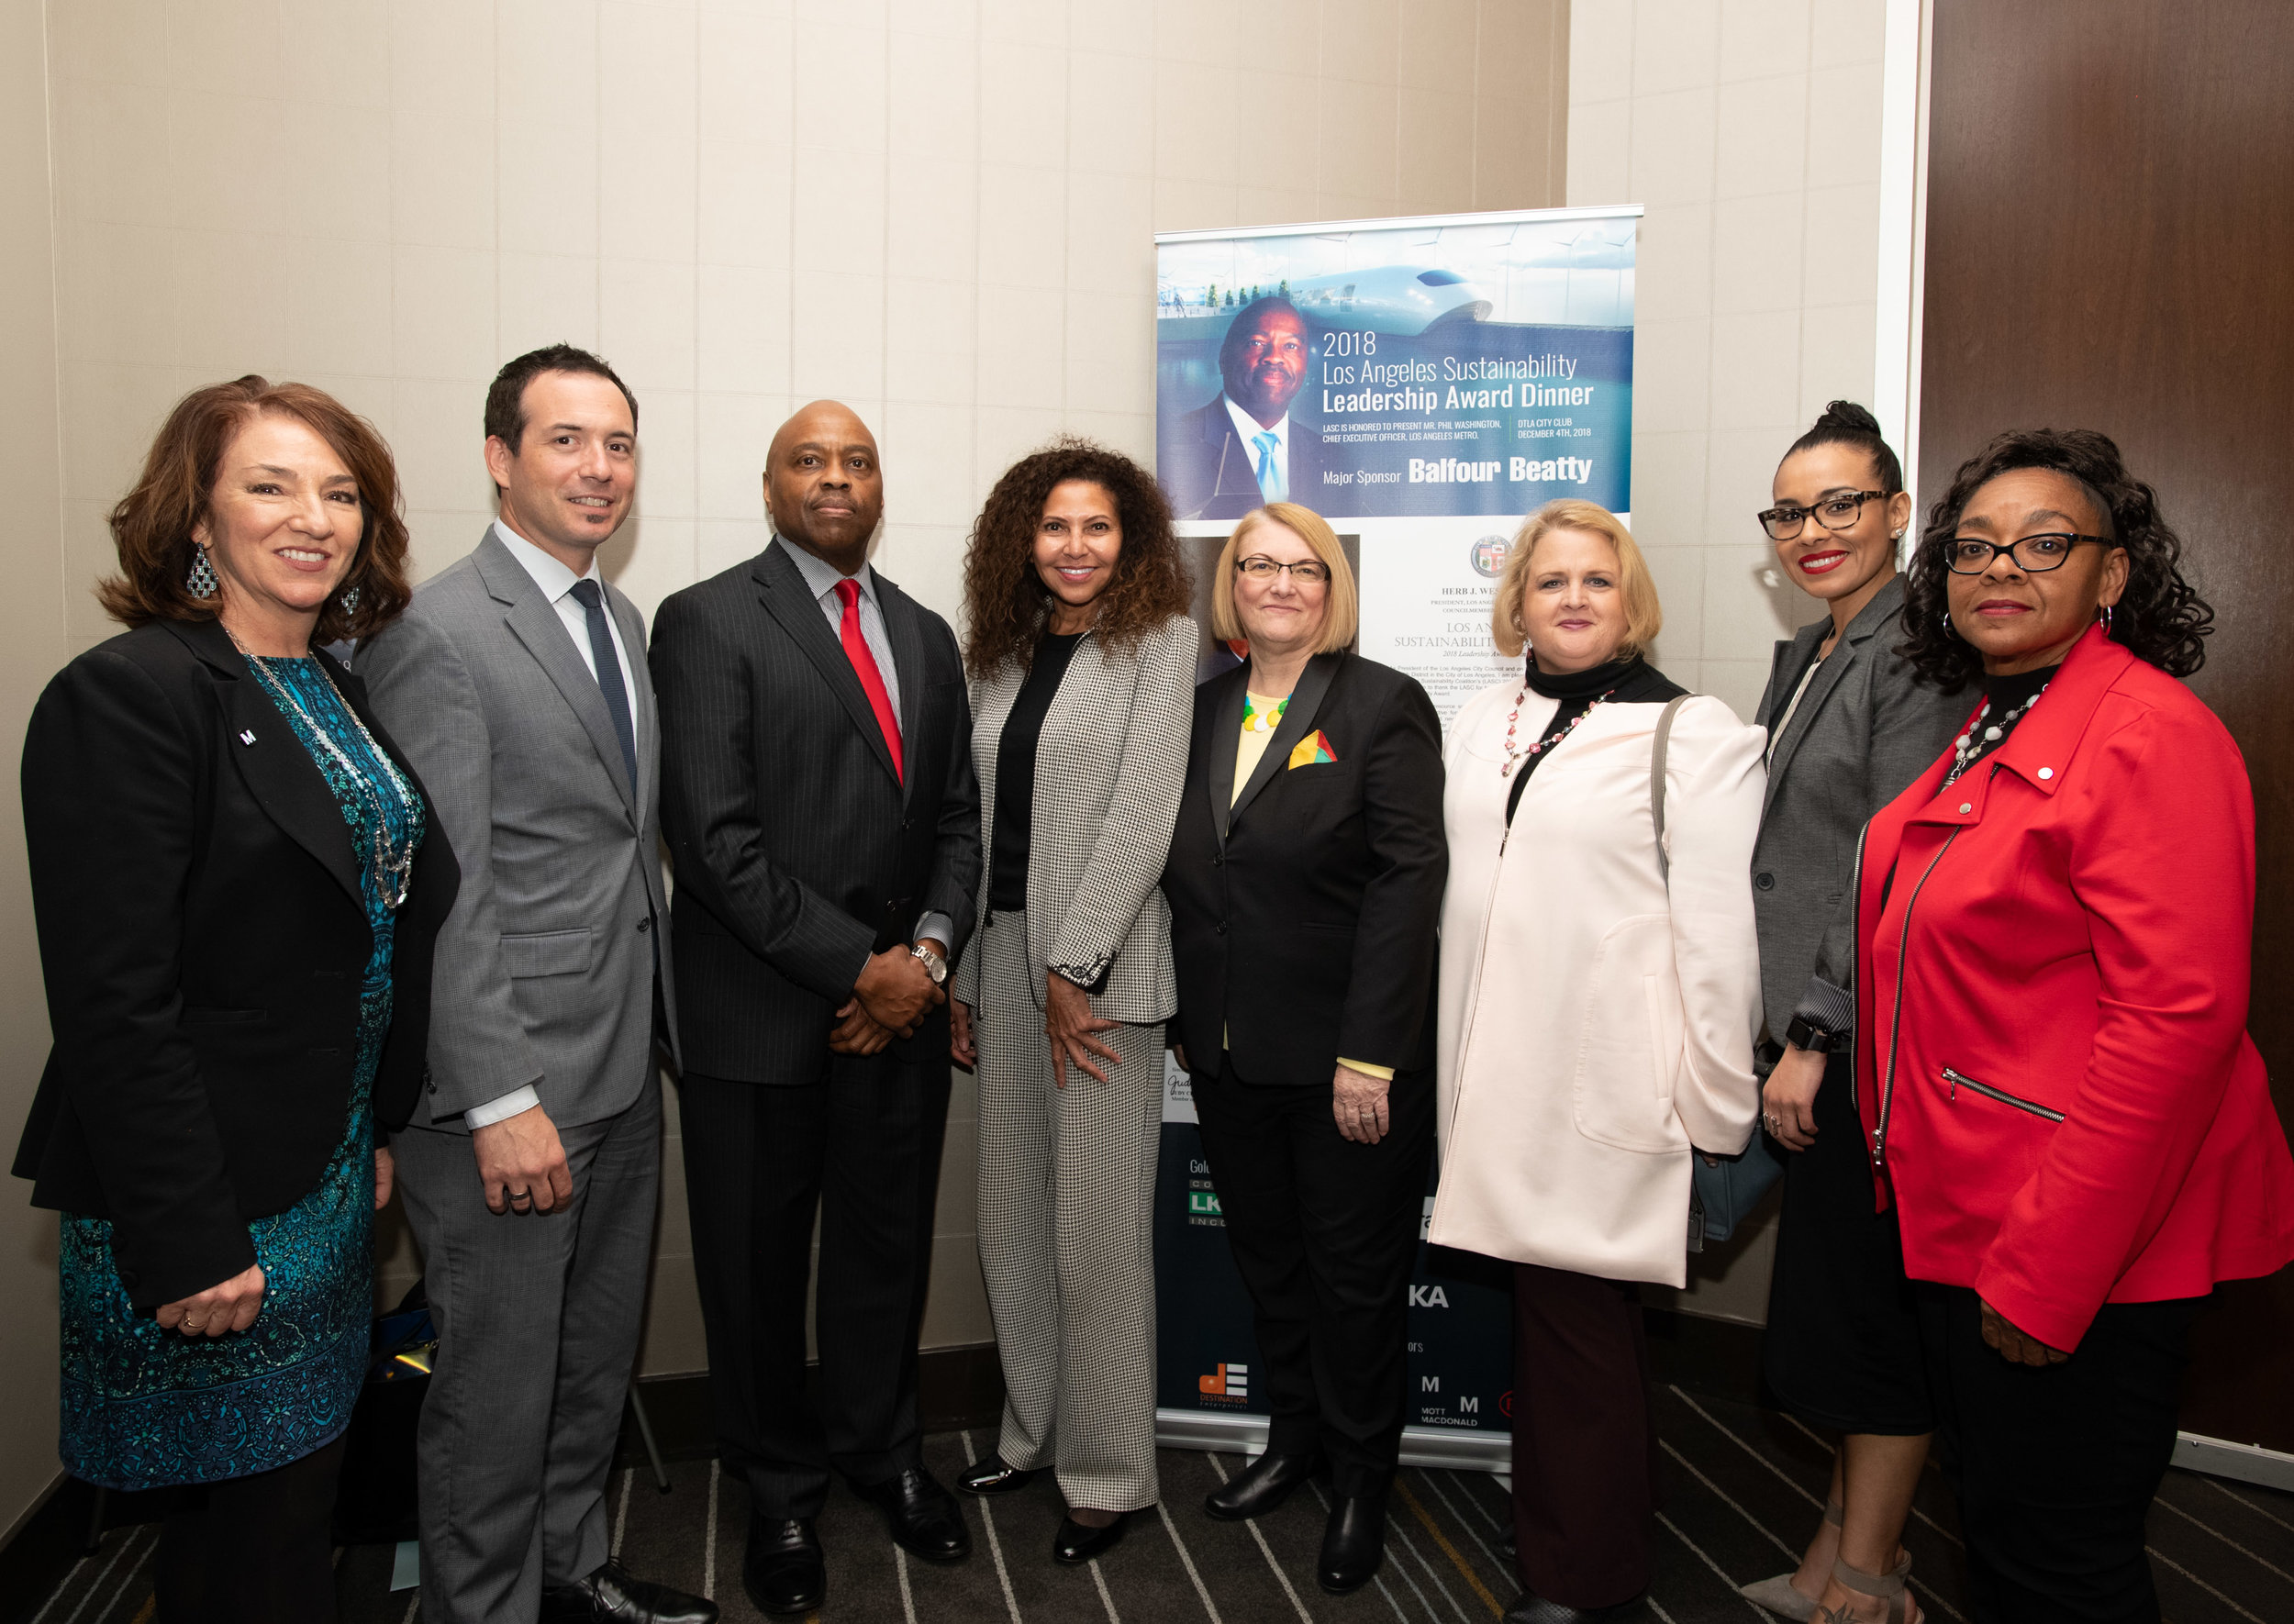 Pic 4 L-R Pauletta Tonilas (Metro Chief Communication Officer), Dave Perry (Transportation Deputy, Supervisor Kathryn Barber), Phil Washington (Metro Chief Executive Officer, 2018 Sustainability Leadership Award) Joni Goheen (Metro Deputy Executive Officer Public Relations) and other Metro personnel